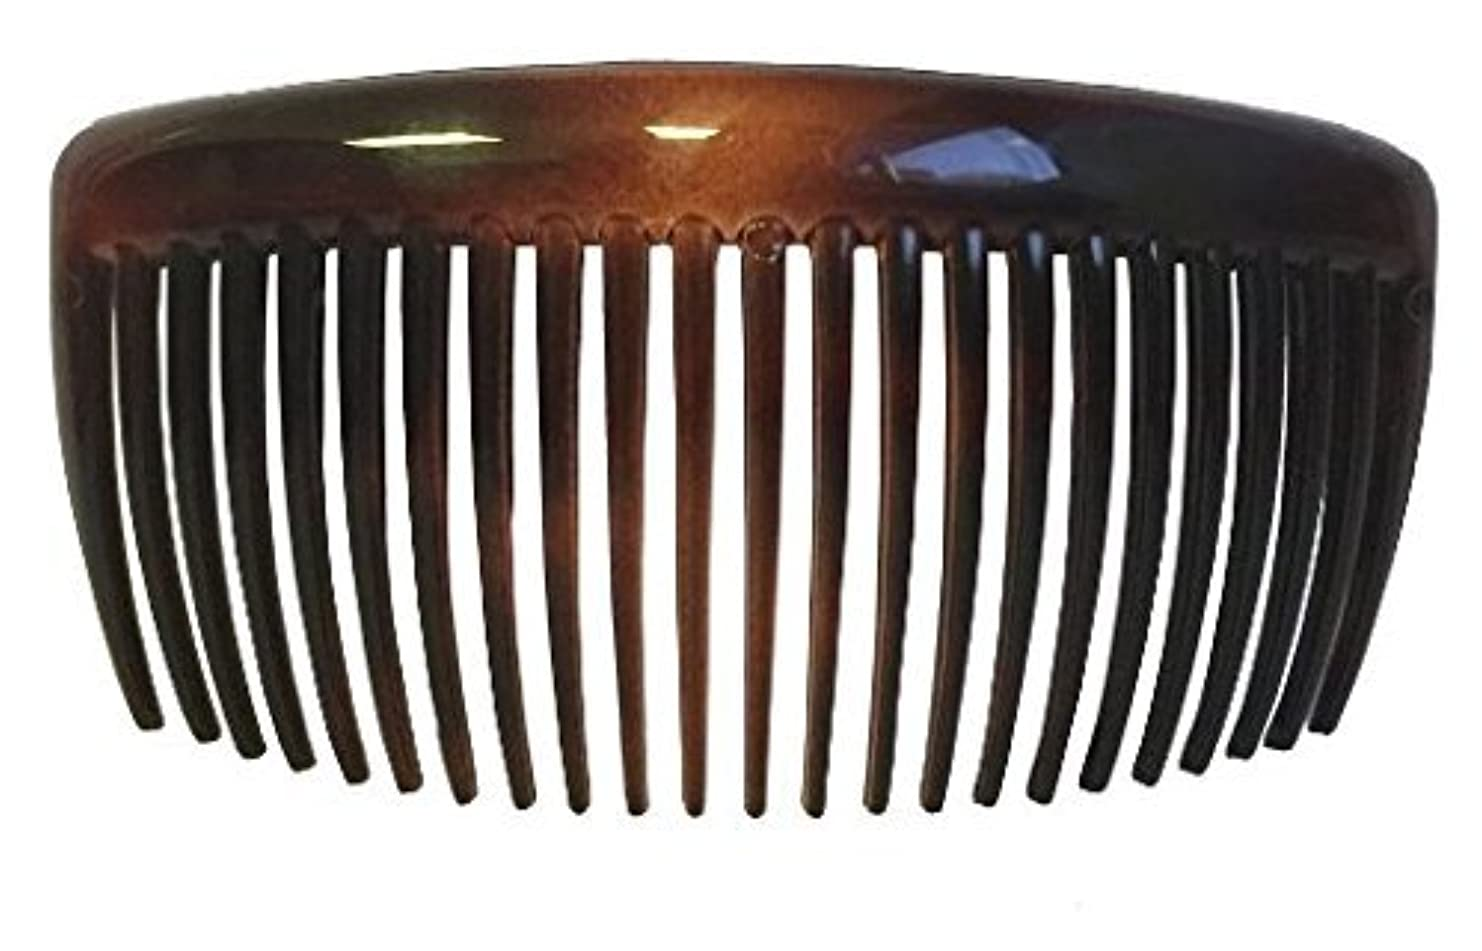 気楽なマイル黒人Parcelona French Large 2 Pieces Glossy Celluloid Shell Good Grip Updo 23 Teeth Hair Side Combs 4.25 Inches for...